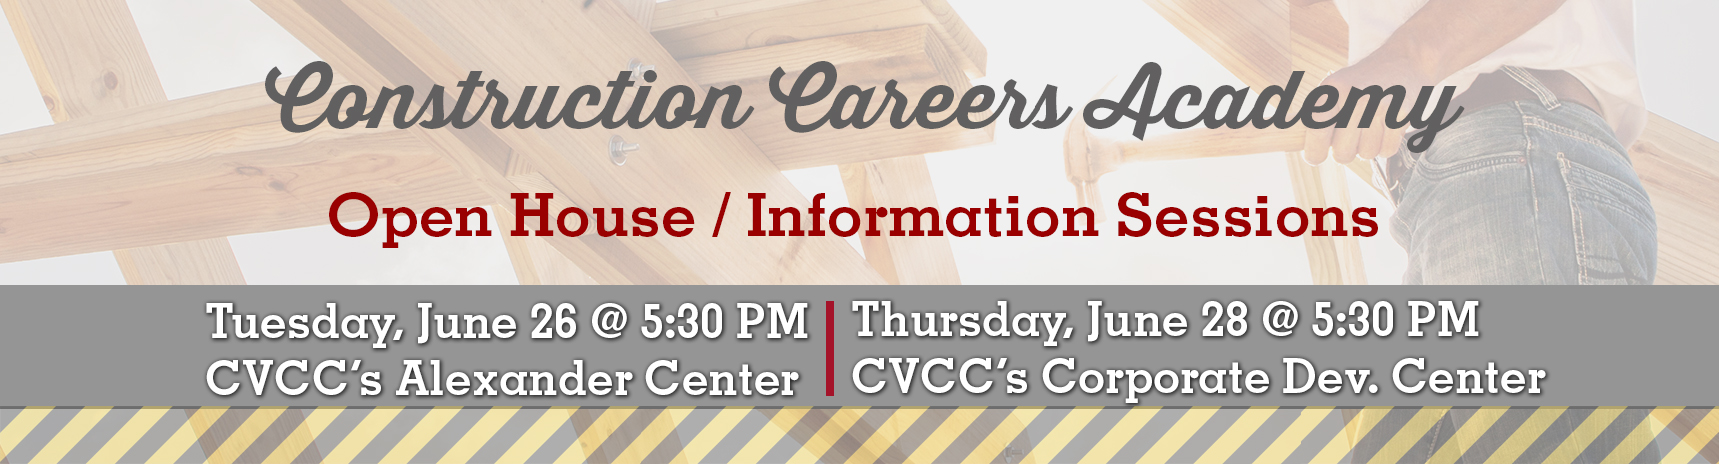 Construction Careers Academy open house and Information Sessions